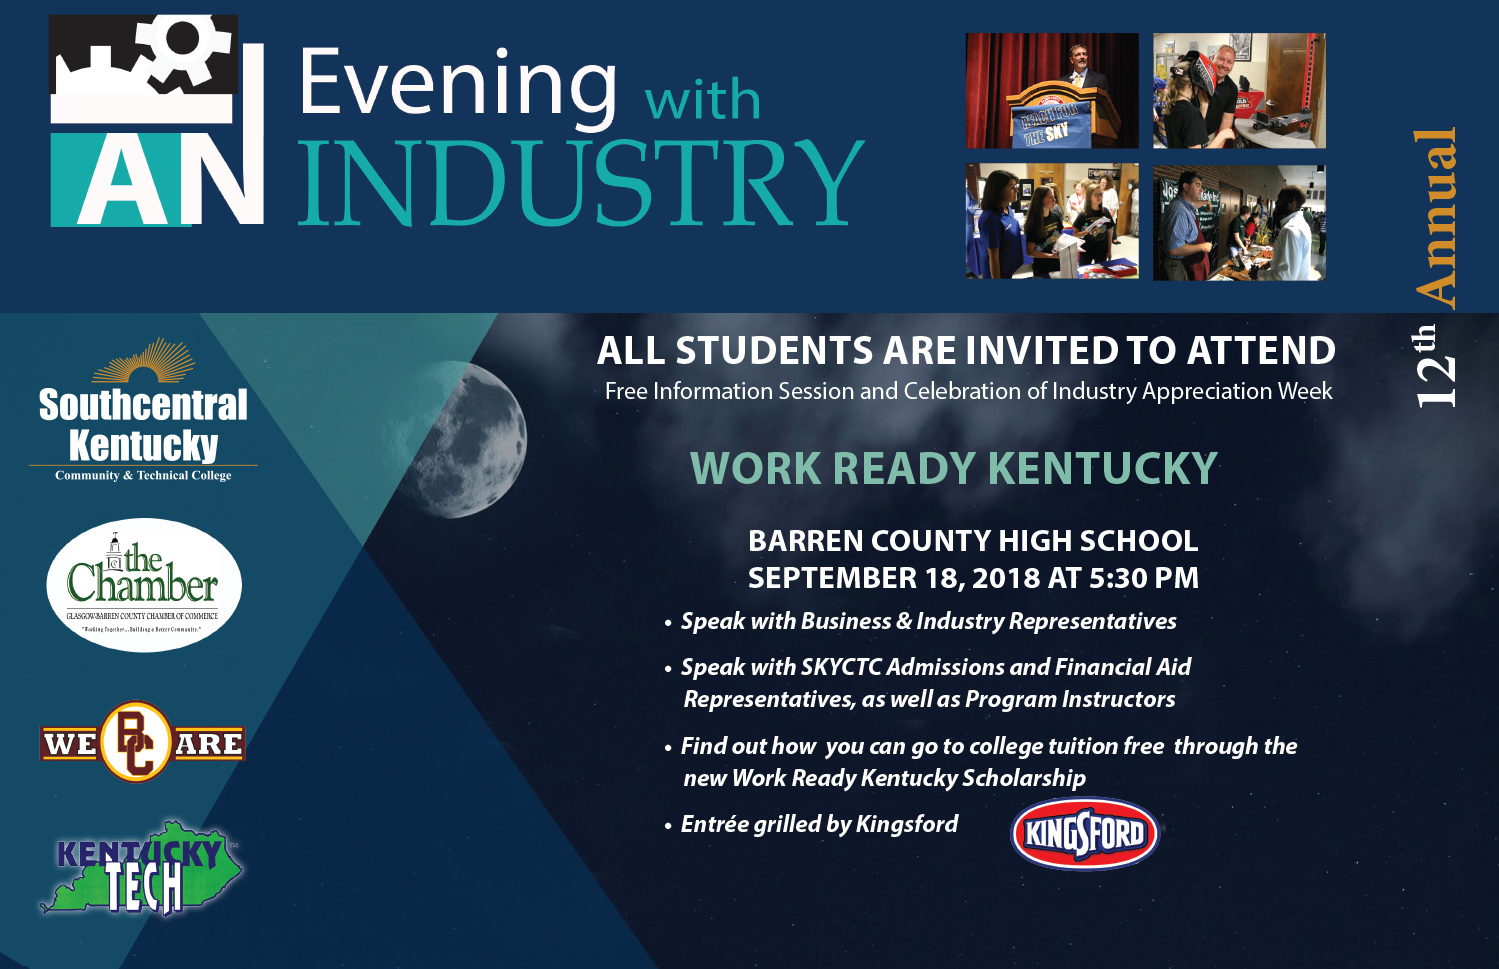 Evening with Industry